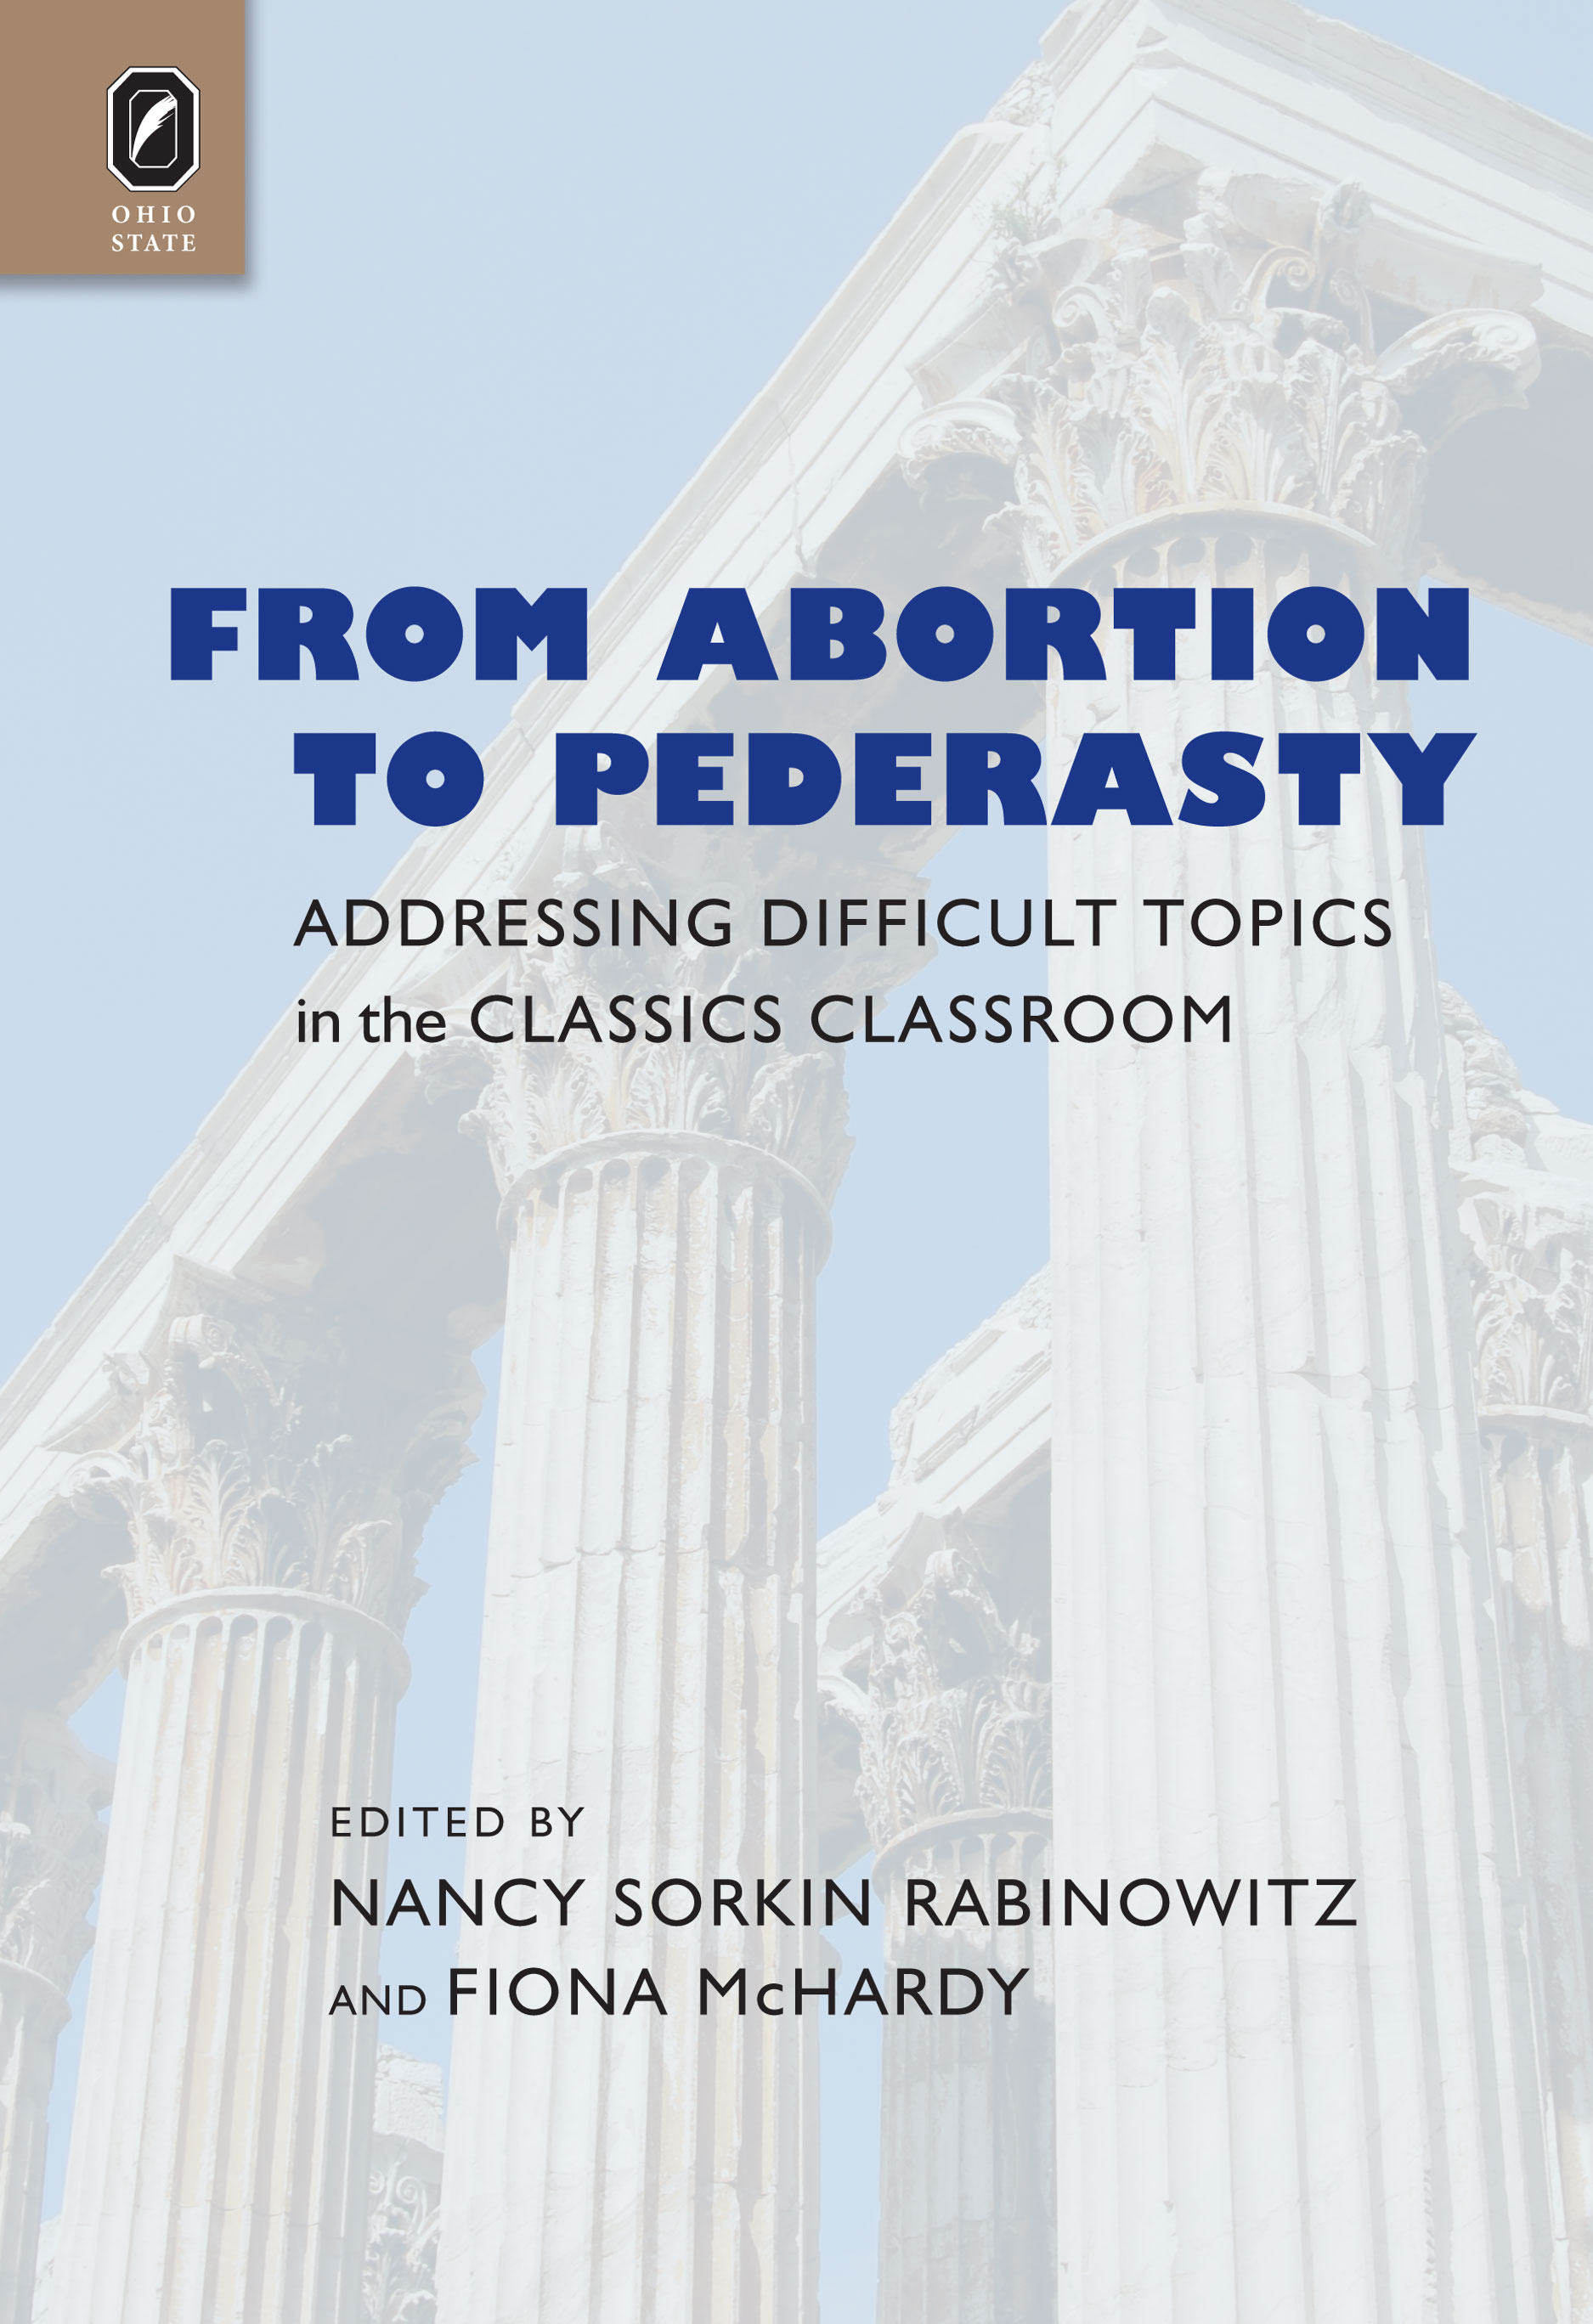 Cover for 2015 winning book of the Teaching Literature Book Award:  From Abortion to Pederasty: Addressing Difficult Topics in the Classics Classroom.